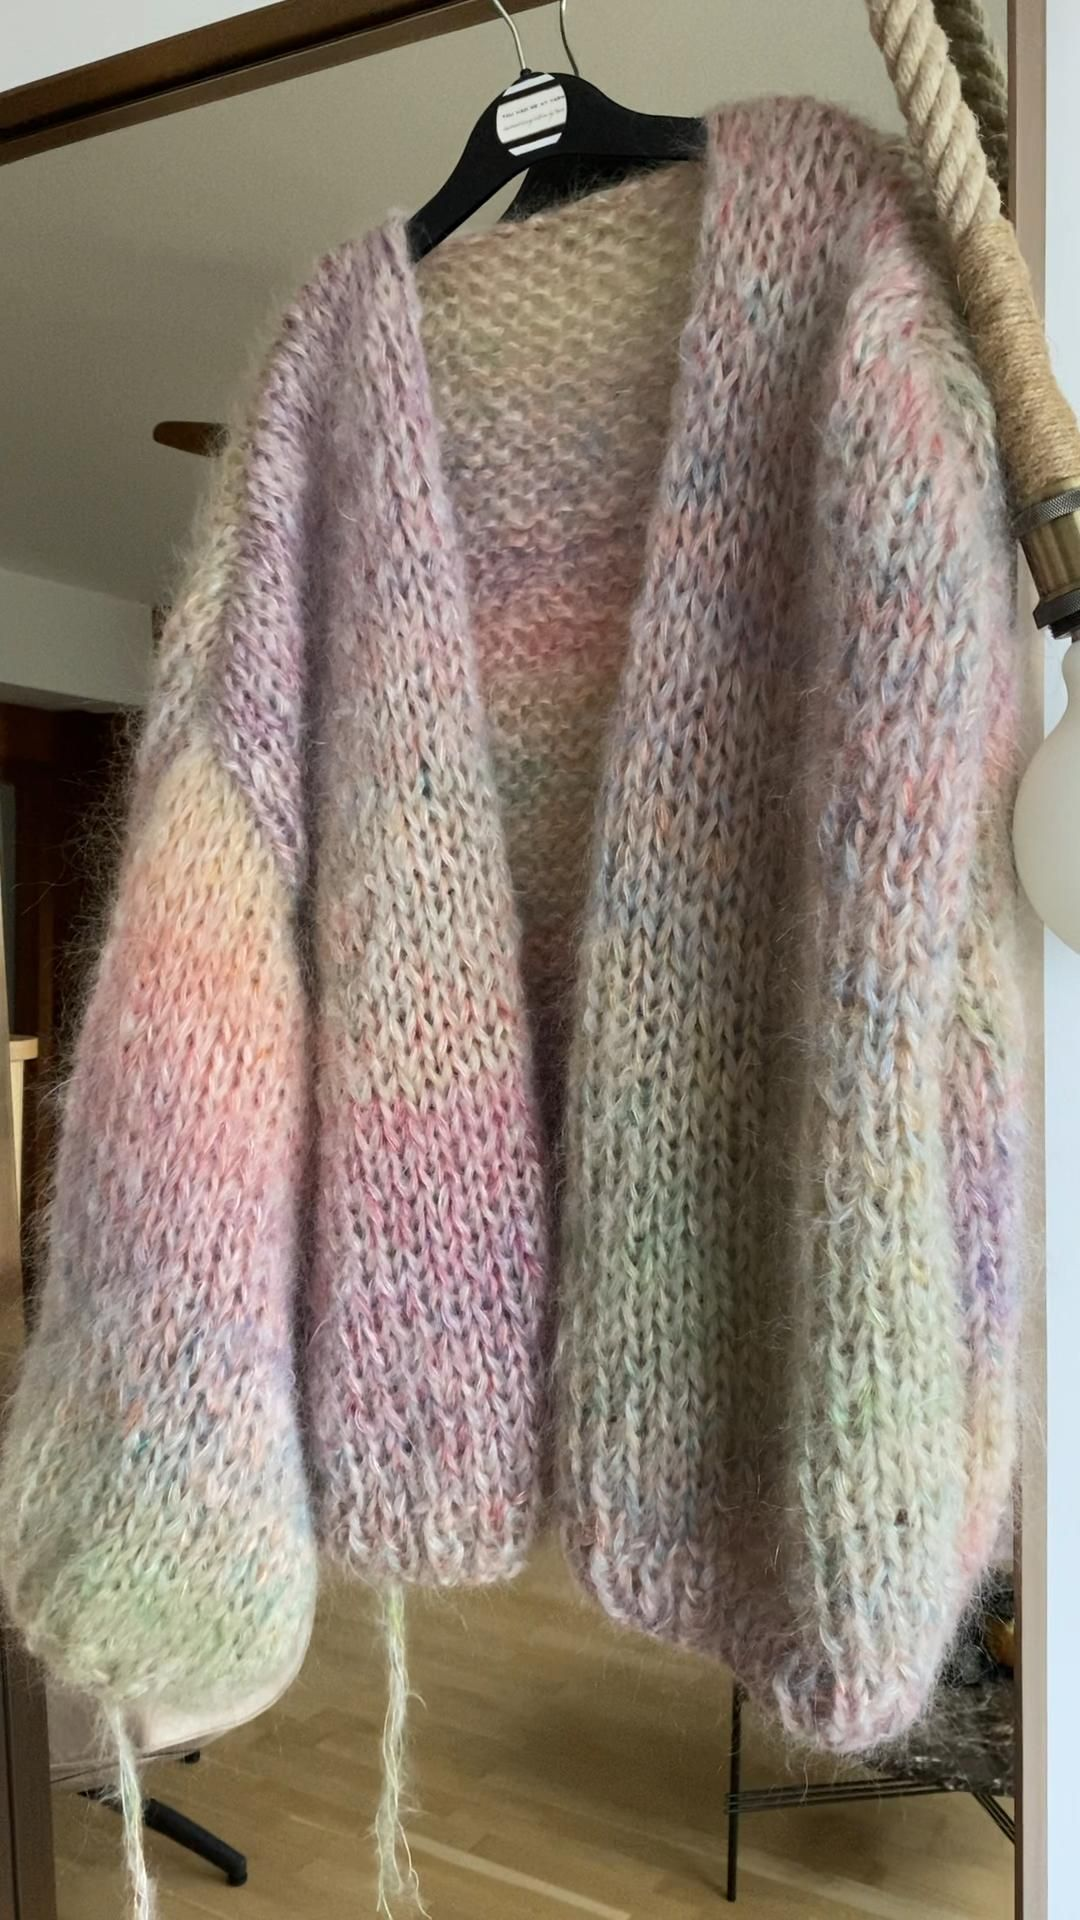 Photo of Mohair knitwear in ombré pastel colors